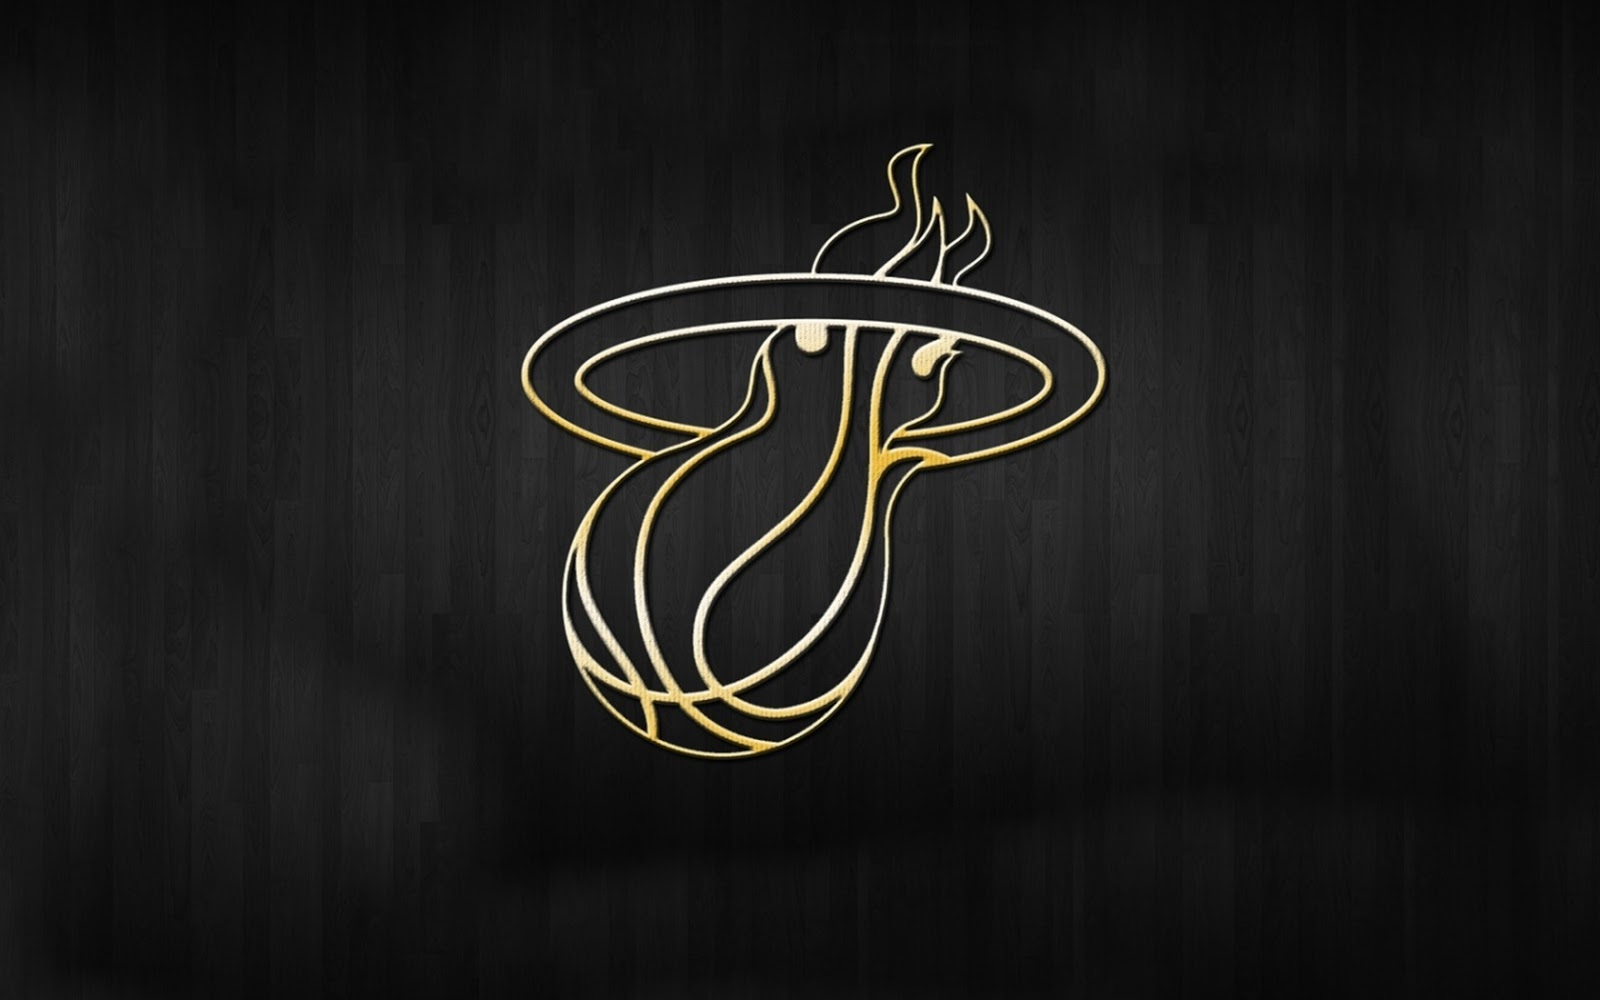 45] Miami Heat Background Wallpaper on WallpaperSafari 1600x1000